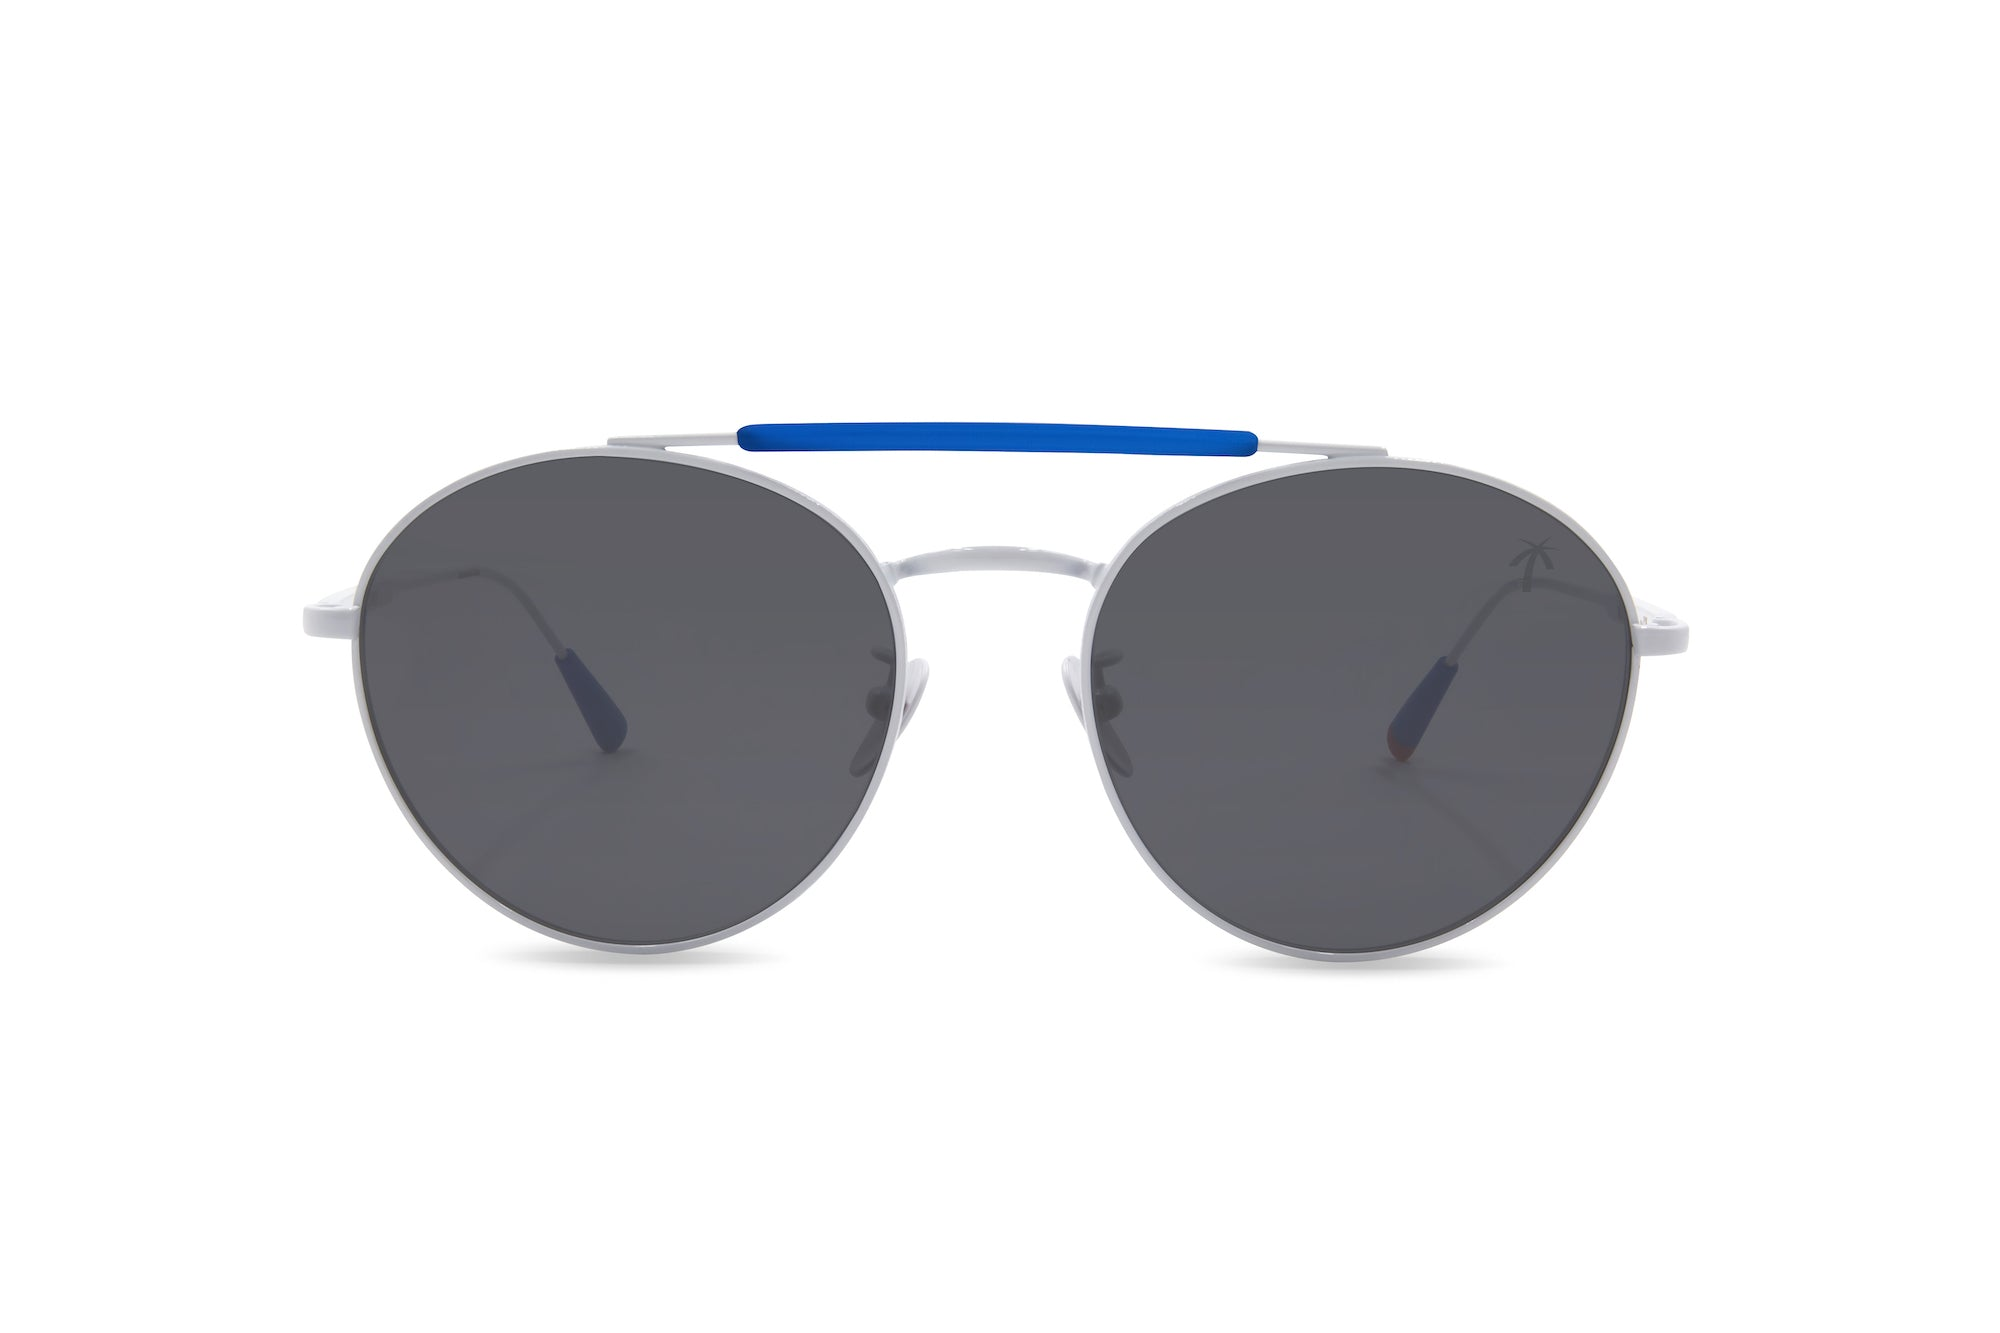 Westwood in Smoke Lens - Peppertint - Designer sunglasses